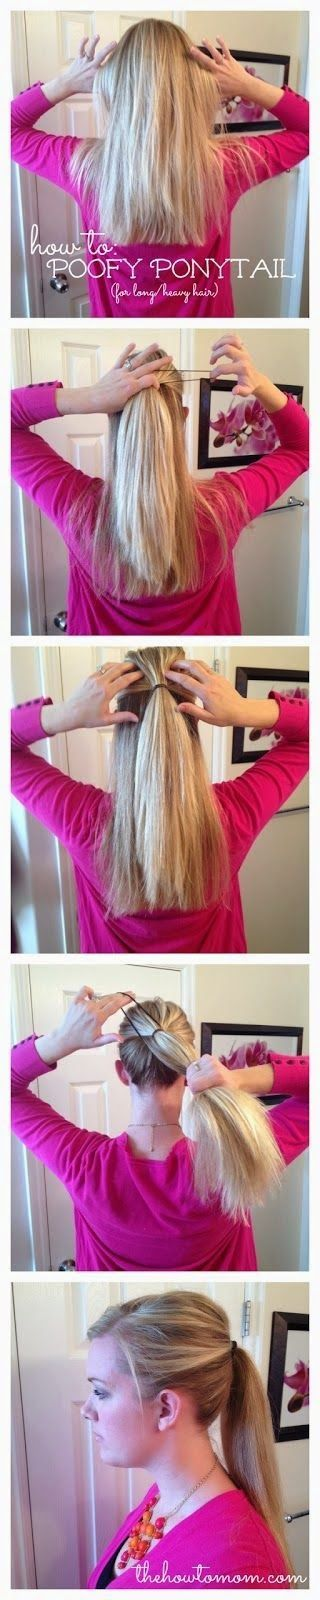 pinterestus:  how to poofy a ponytail